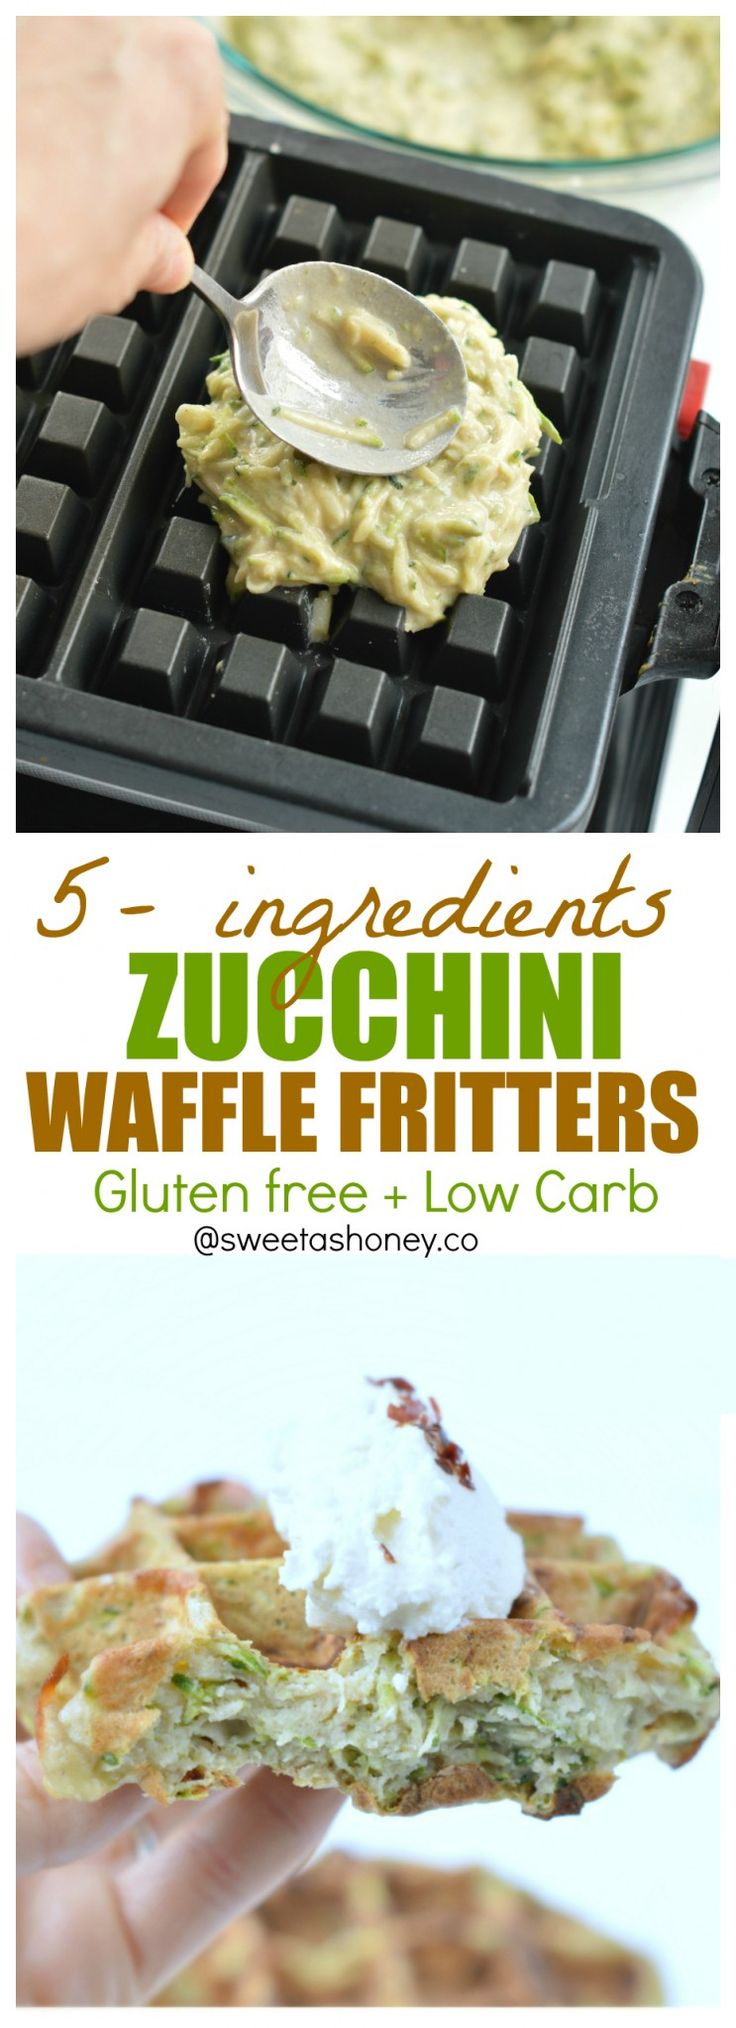 Zucchini waffles, a great way to makes kids eat veggie! A simple make-ahead and freezable zucchini waffle fritter recipe. Gluten free, low carb (<10g per waffle) . An healthy clean eating dinner.